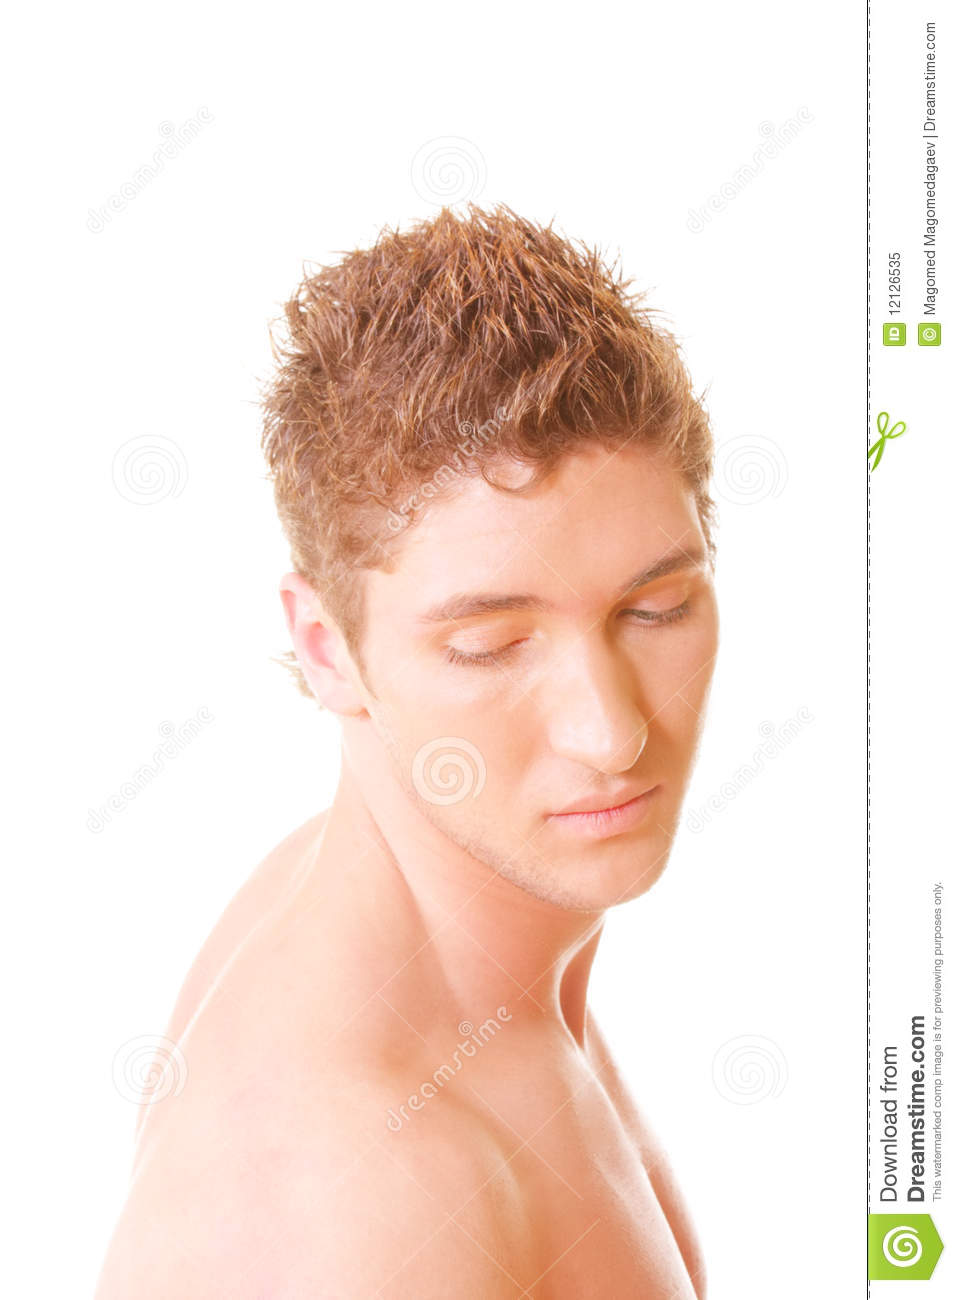 Serene Guy Turned Head Sideview Royalty Free Stock Photo